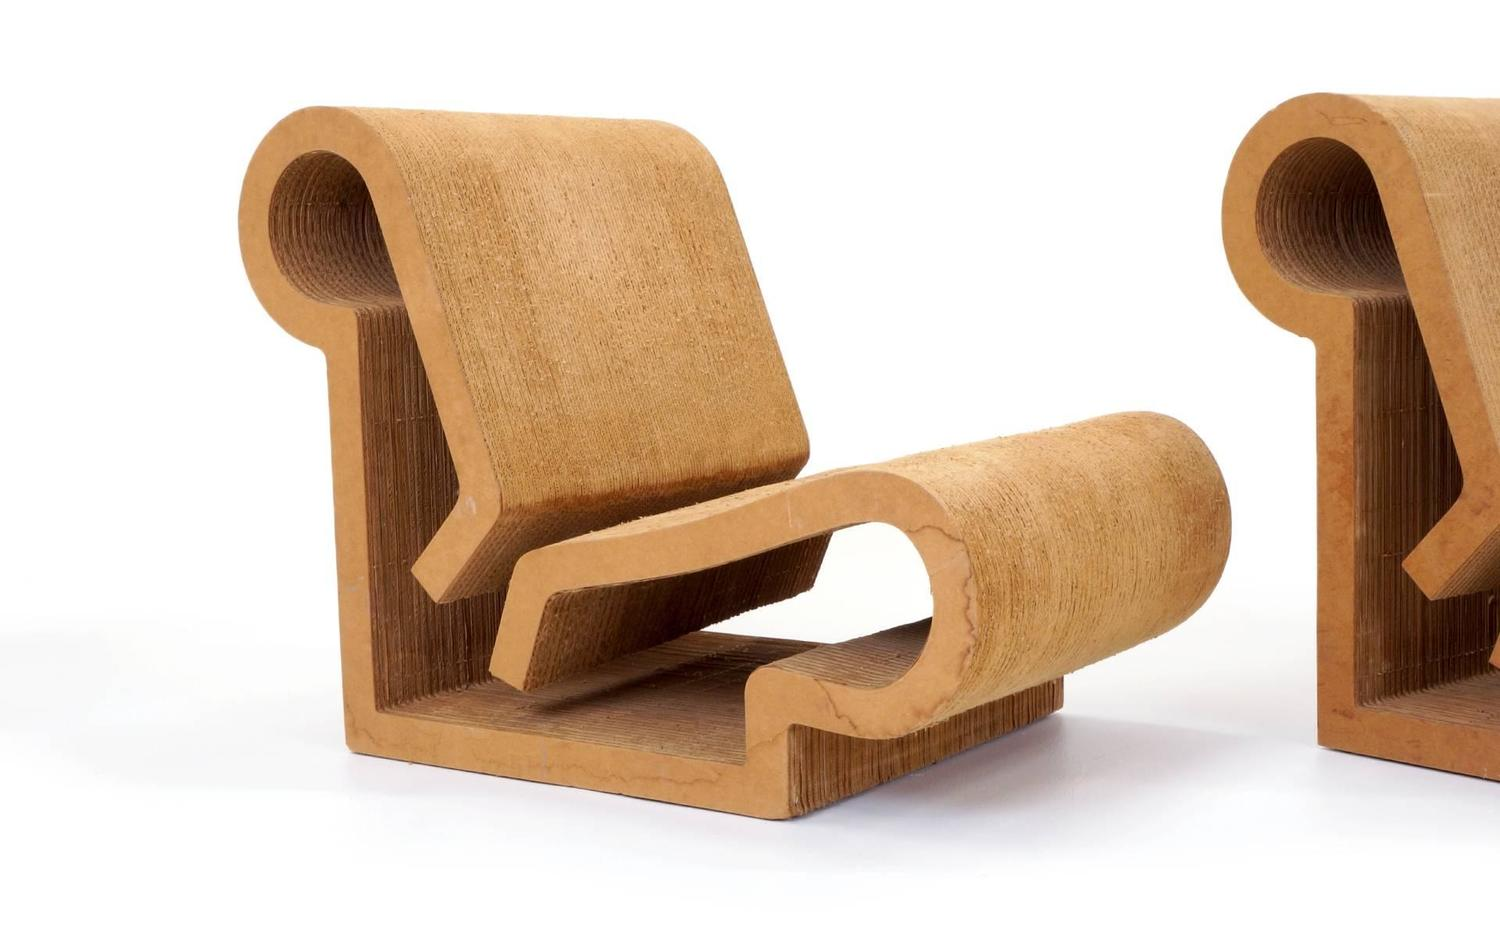 frank gehry cardboard chair floral fabric chairs rare original easy edges contour